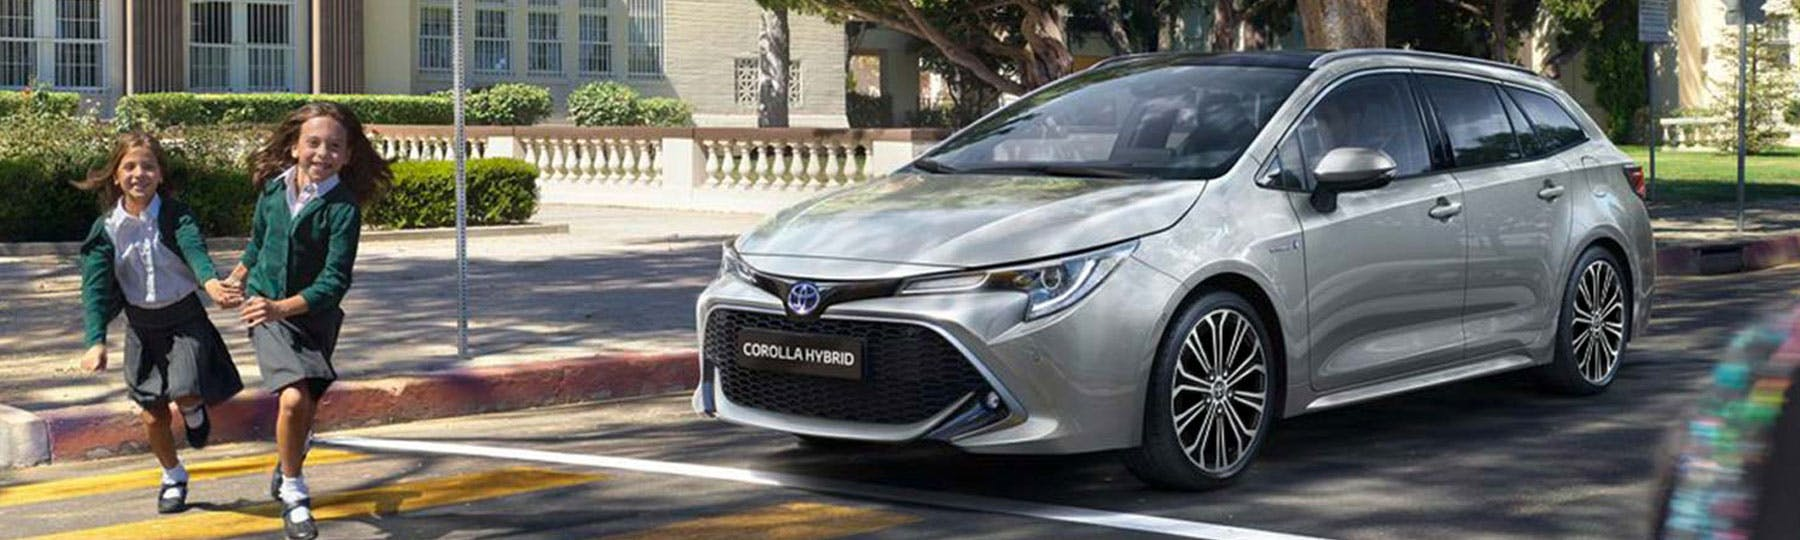 All New Toyota Corolla Touring Sports Motability